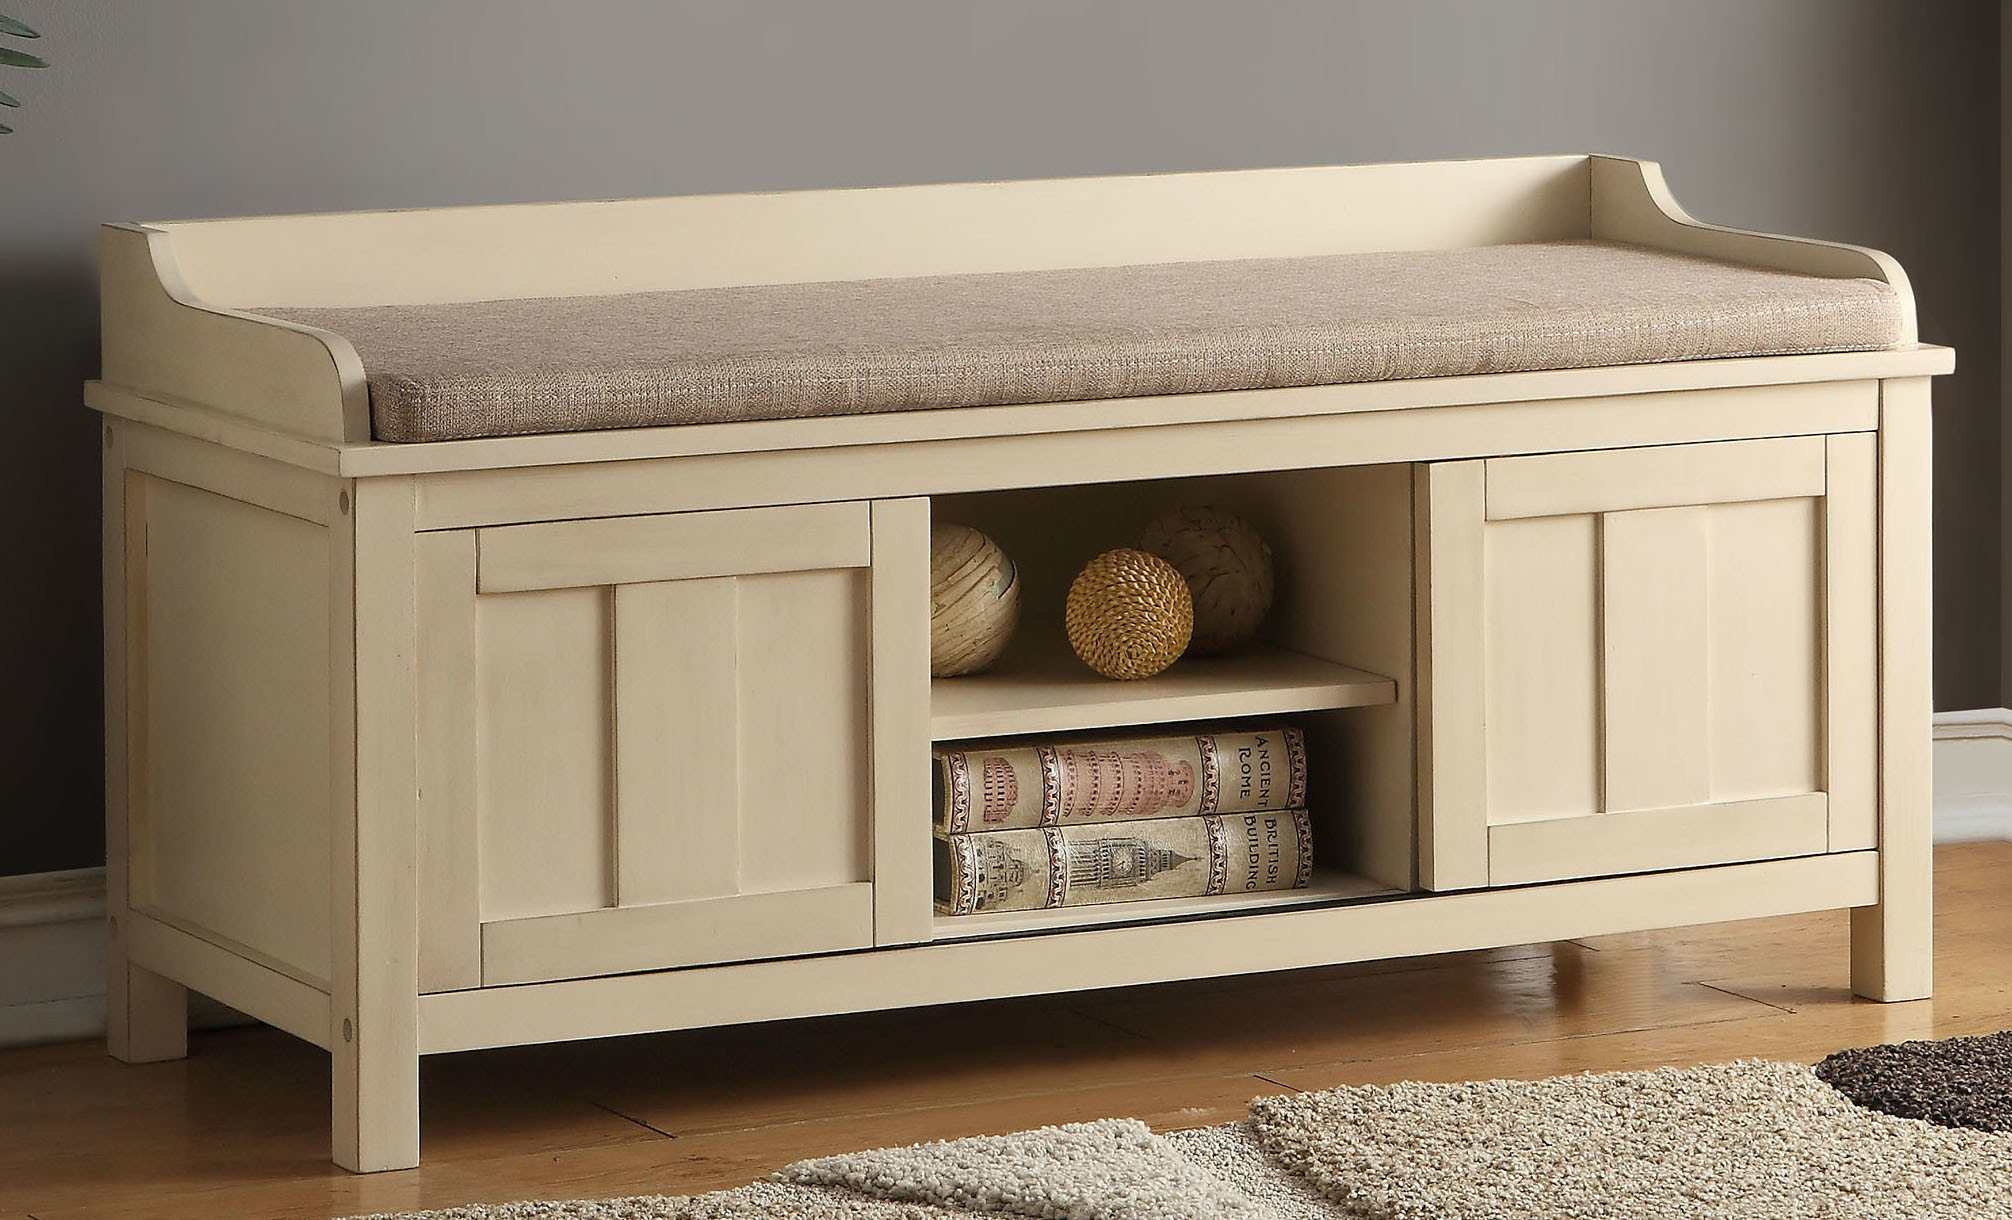 Acme Furniture Bench With Storage 96620